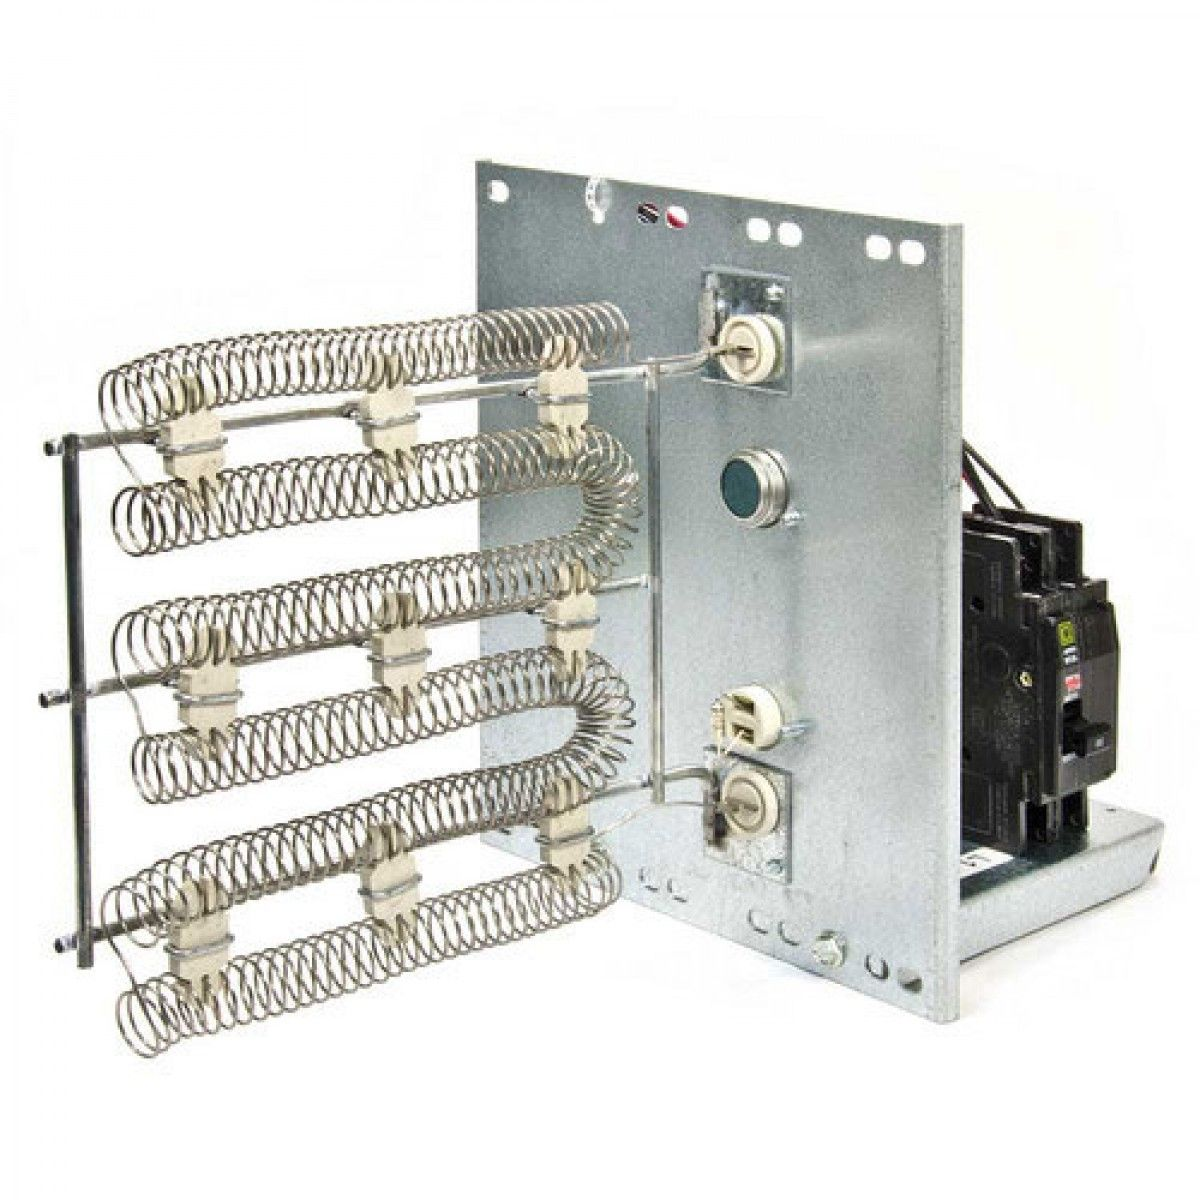 10 Kw Goodman Hkr 10 Electric Heat Kits For Air Handlers